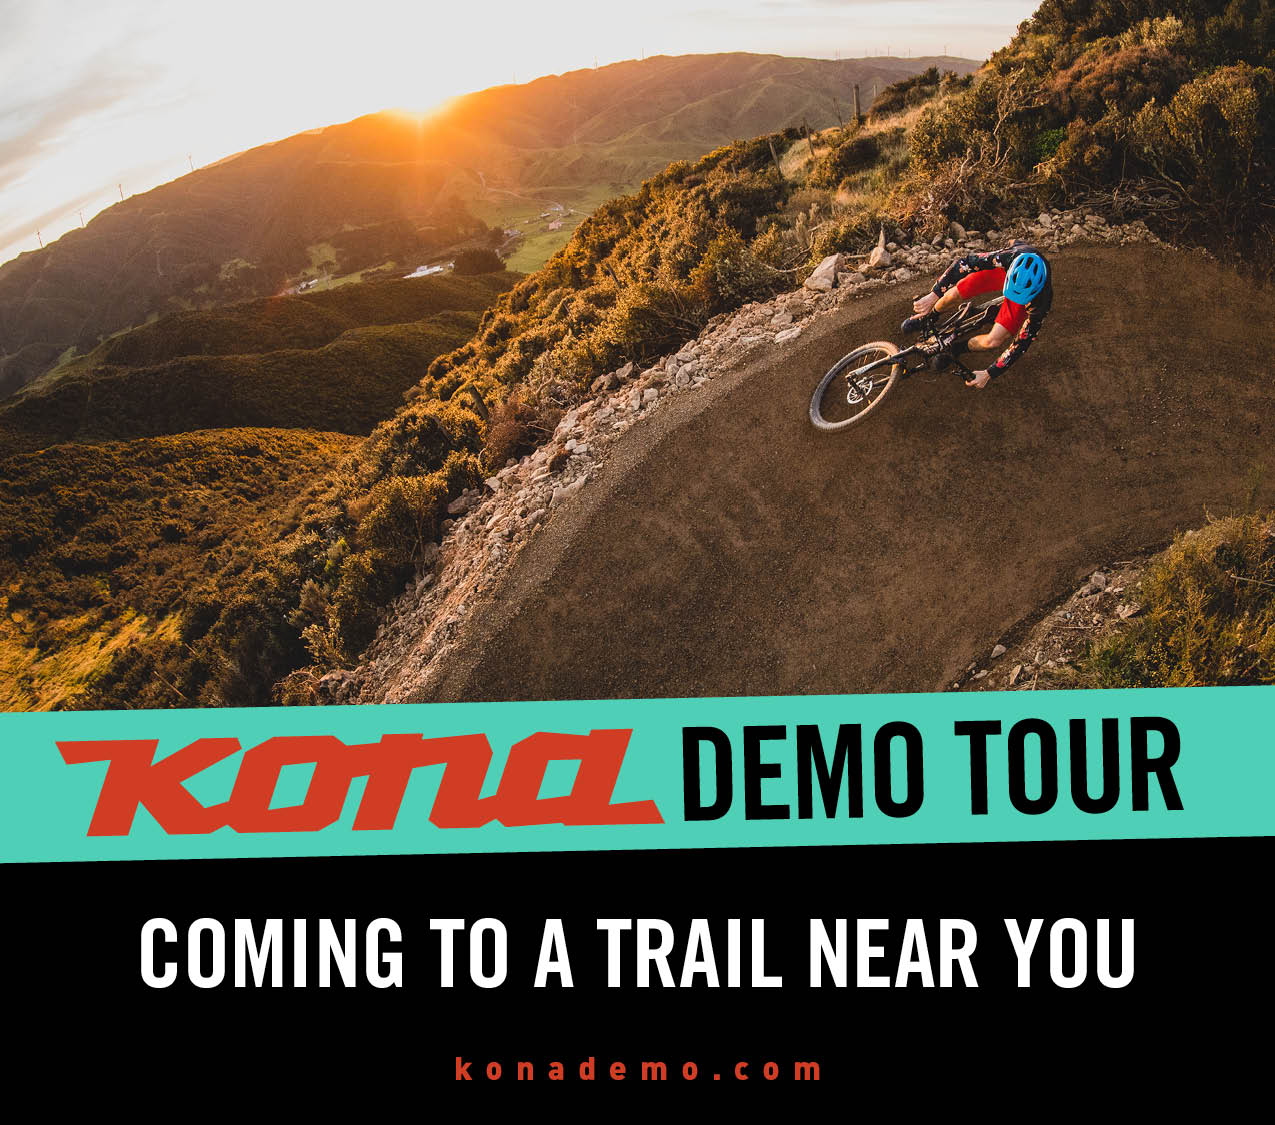 Oregon and Washington, the KONA demo tour is headed your way!